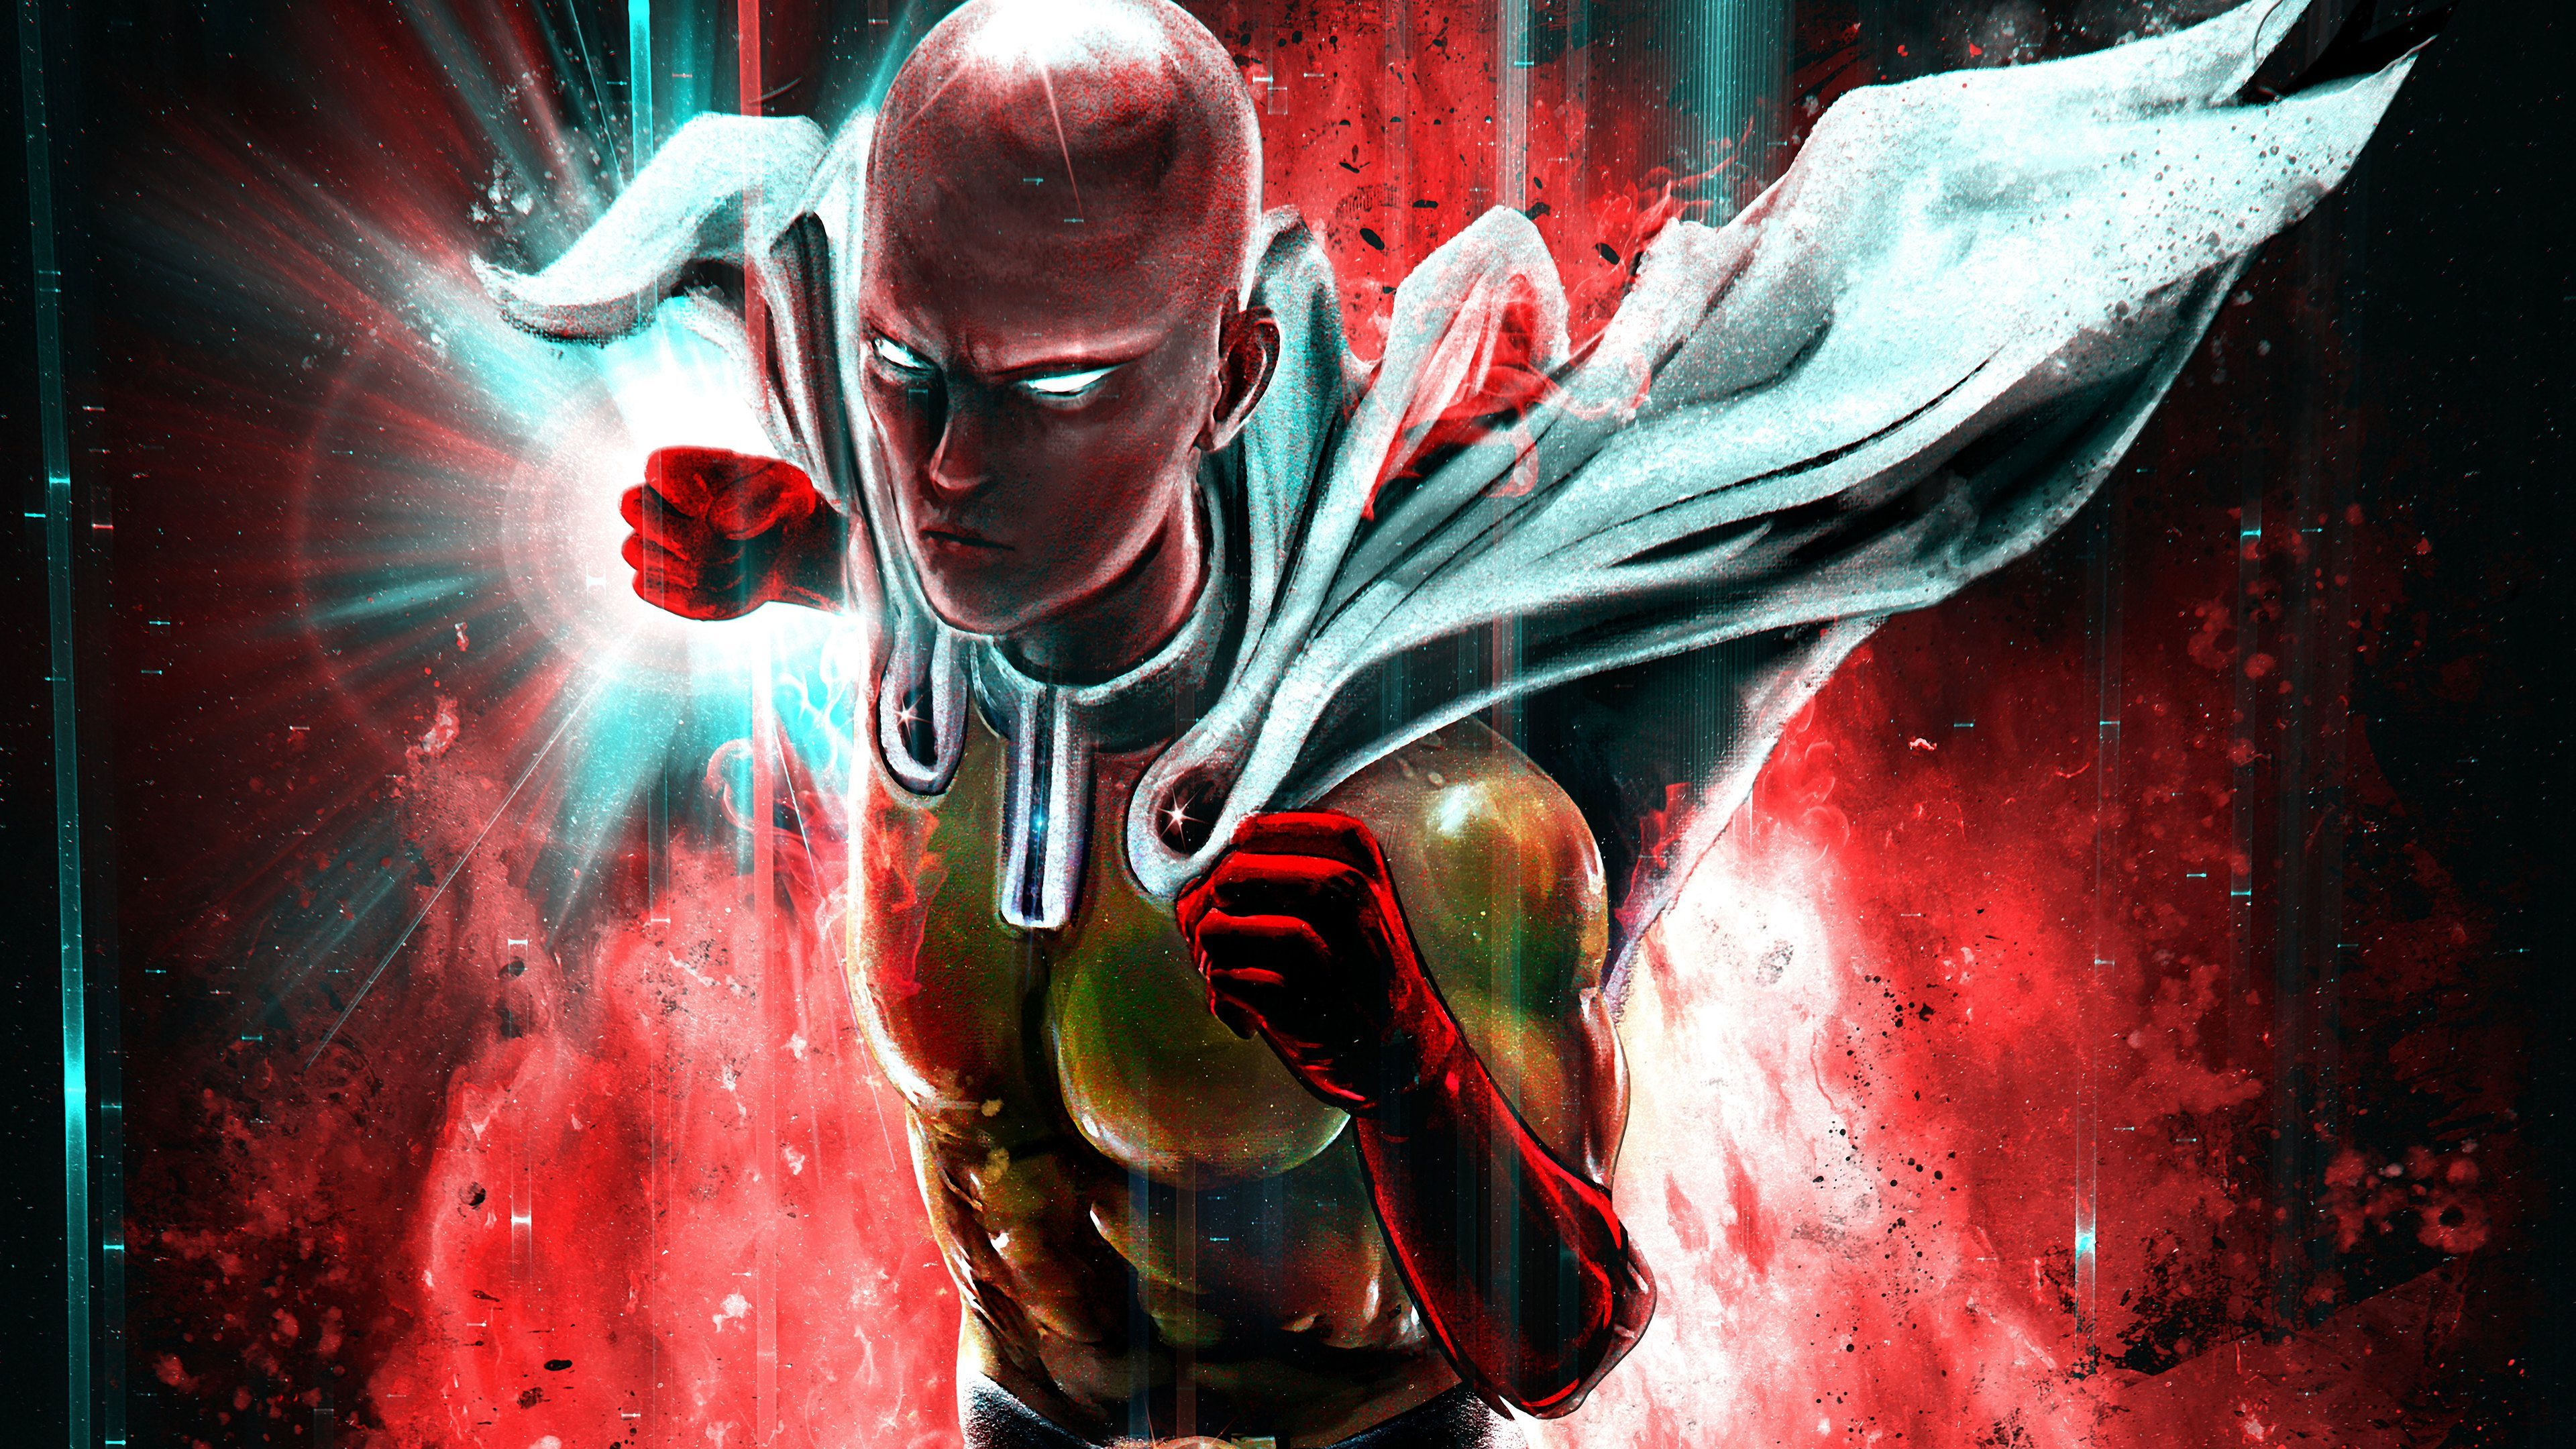 One Punch Man Anime Wallpapers Top Free One Punch Man Anime Backgrounds Wallpaperaccess